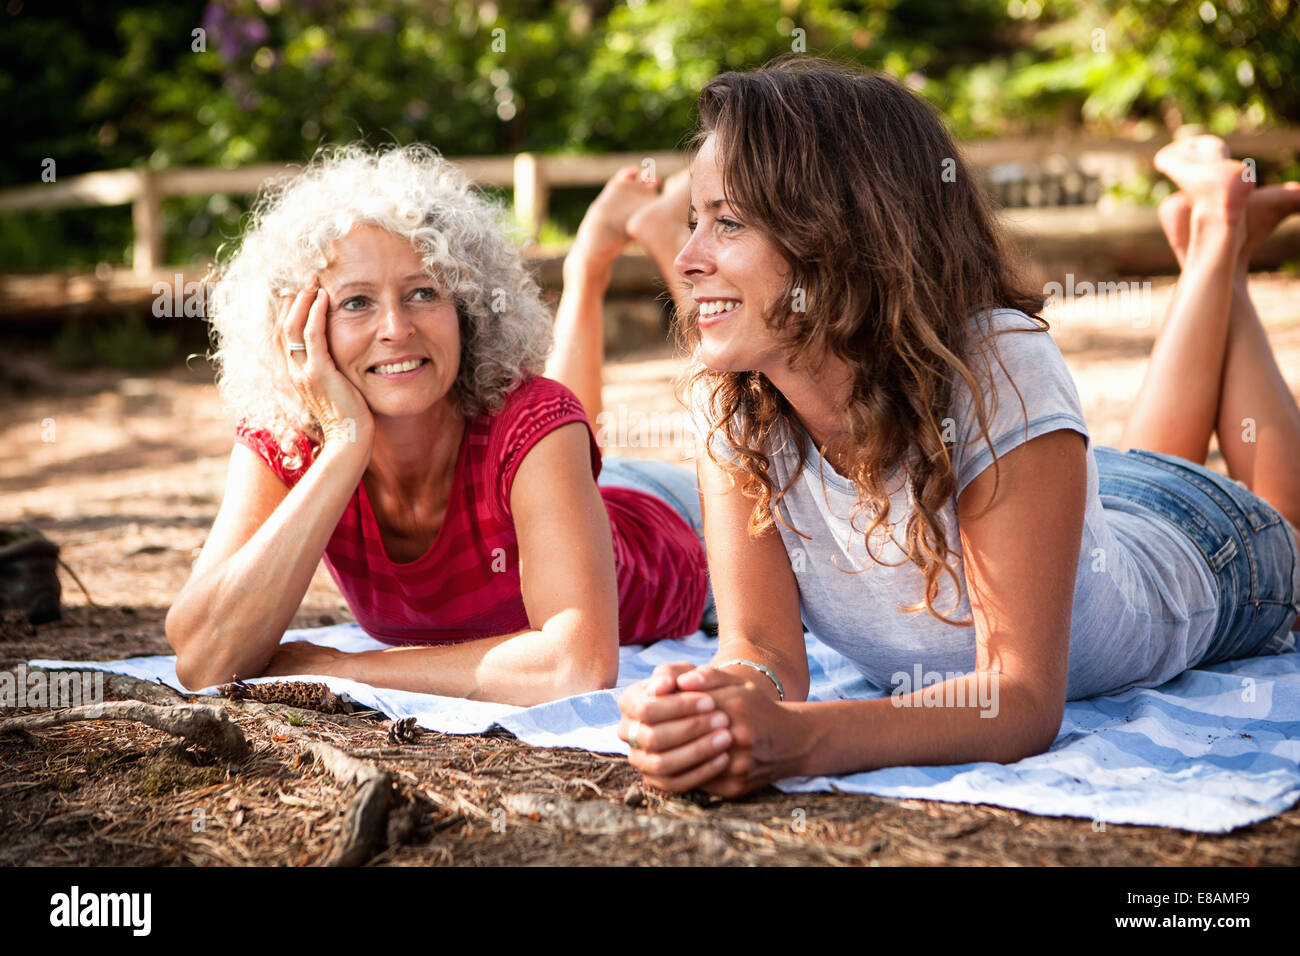 Mother and daughter on picnic blanket by the Blue Pool, Wareham, Dorset, United Kingdom - Stock Image